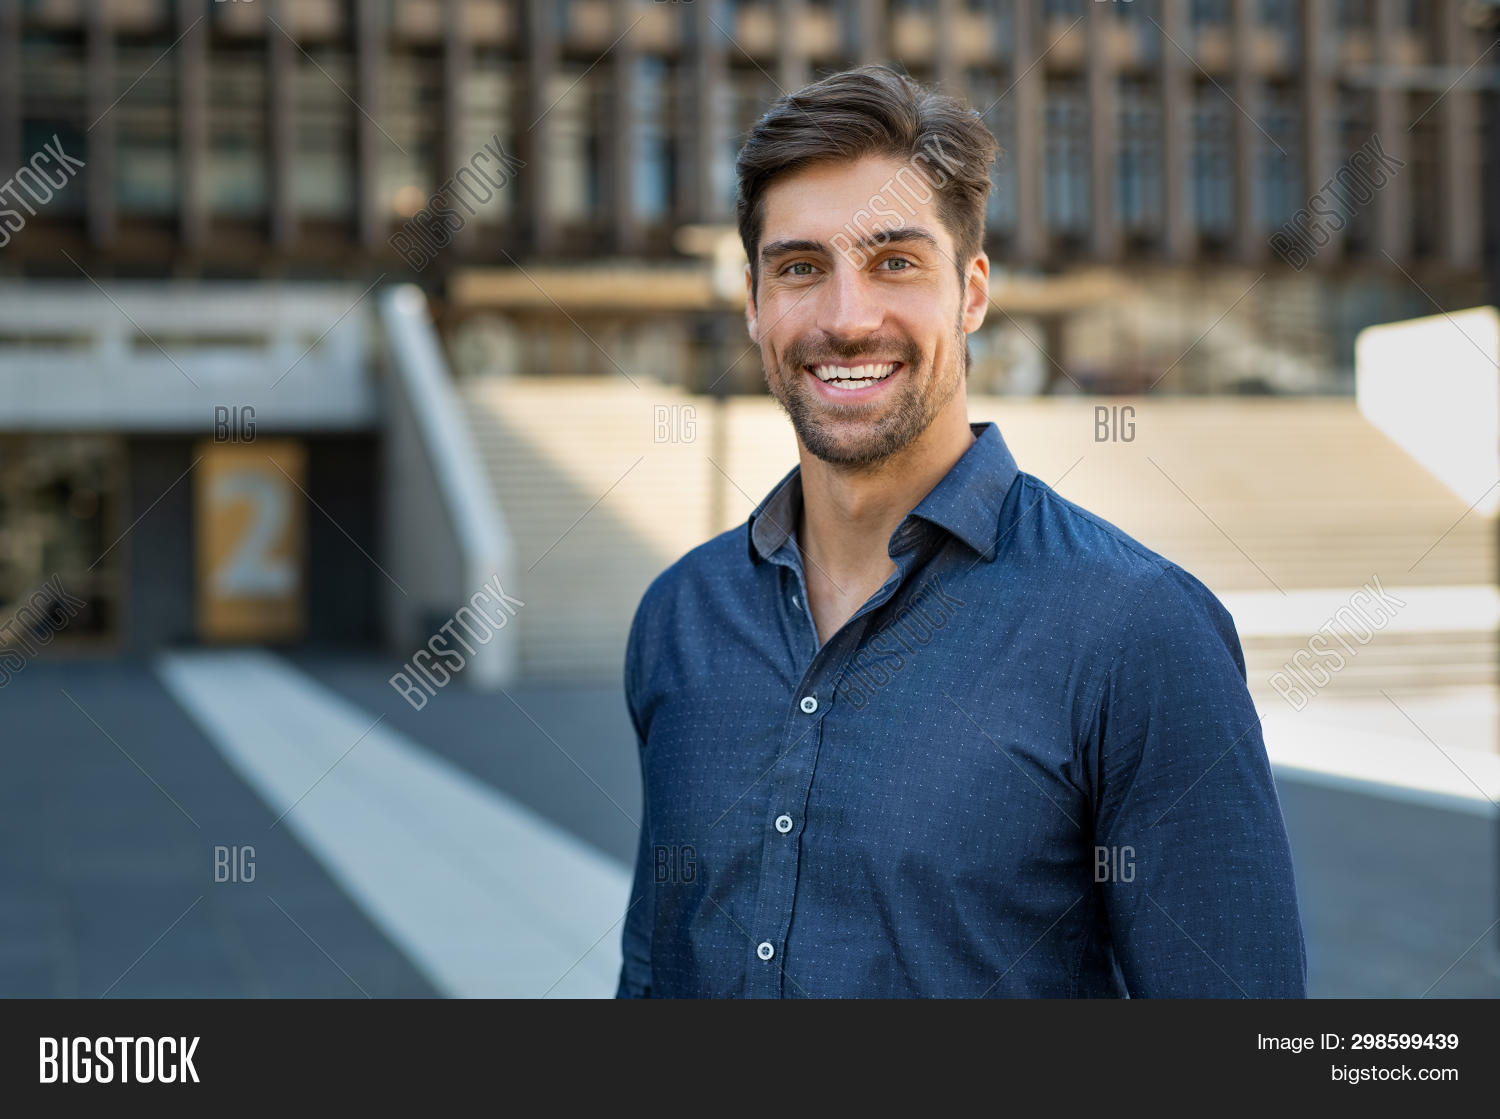 adult,beard,building,business,businessman,casual,casual man,cheerful,city,city street,confident,copy space,corporate,face,go to work,guy,handsome,handsome man,happy,hispanic,joyful,latin,latin american,looking,looking at camera,man going to work,man wearing shirt,office building,office building exterior,outdoor,outdoors,people,portrait,positive,professional,proud,reliability,satisfaction,satisfied,smart casual,smile,standing,street,success,successful,successful businessman,toothy smile,urban,urban background,young